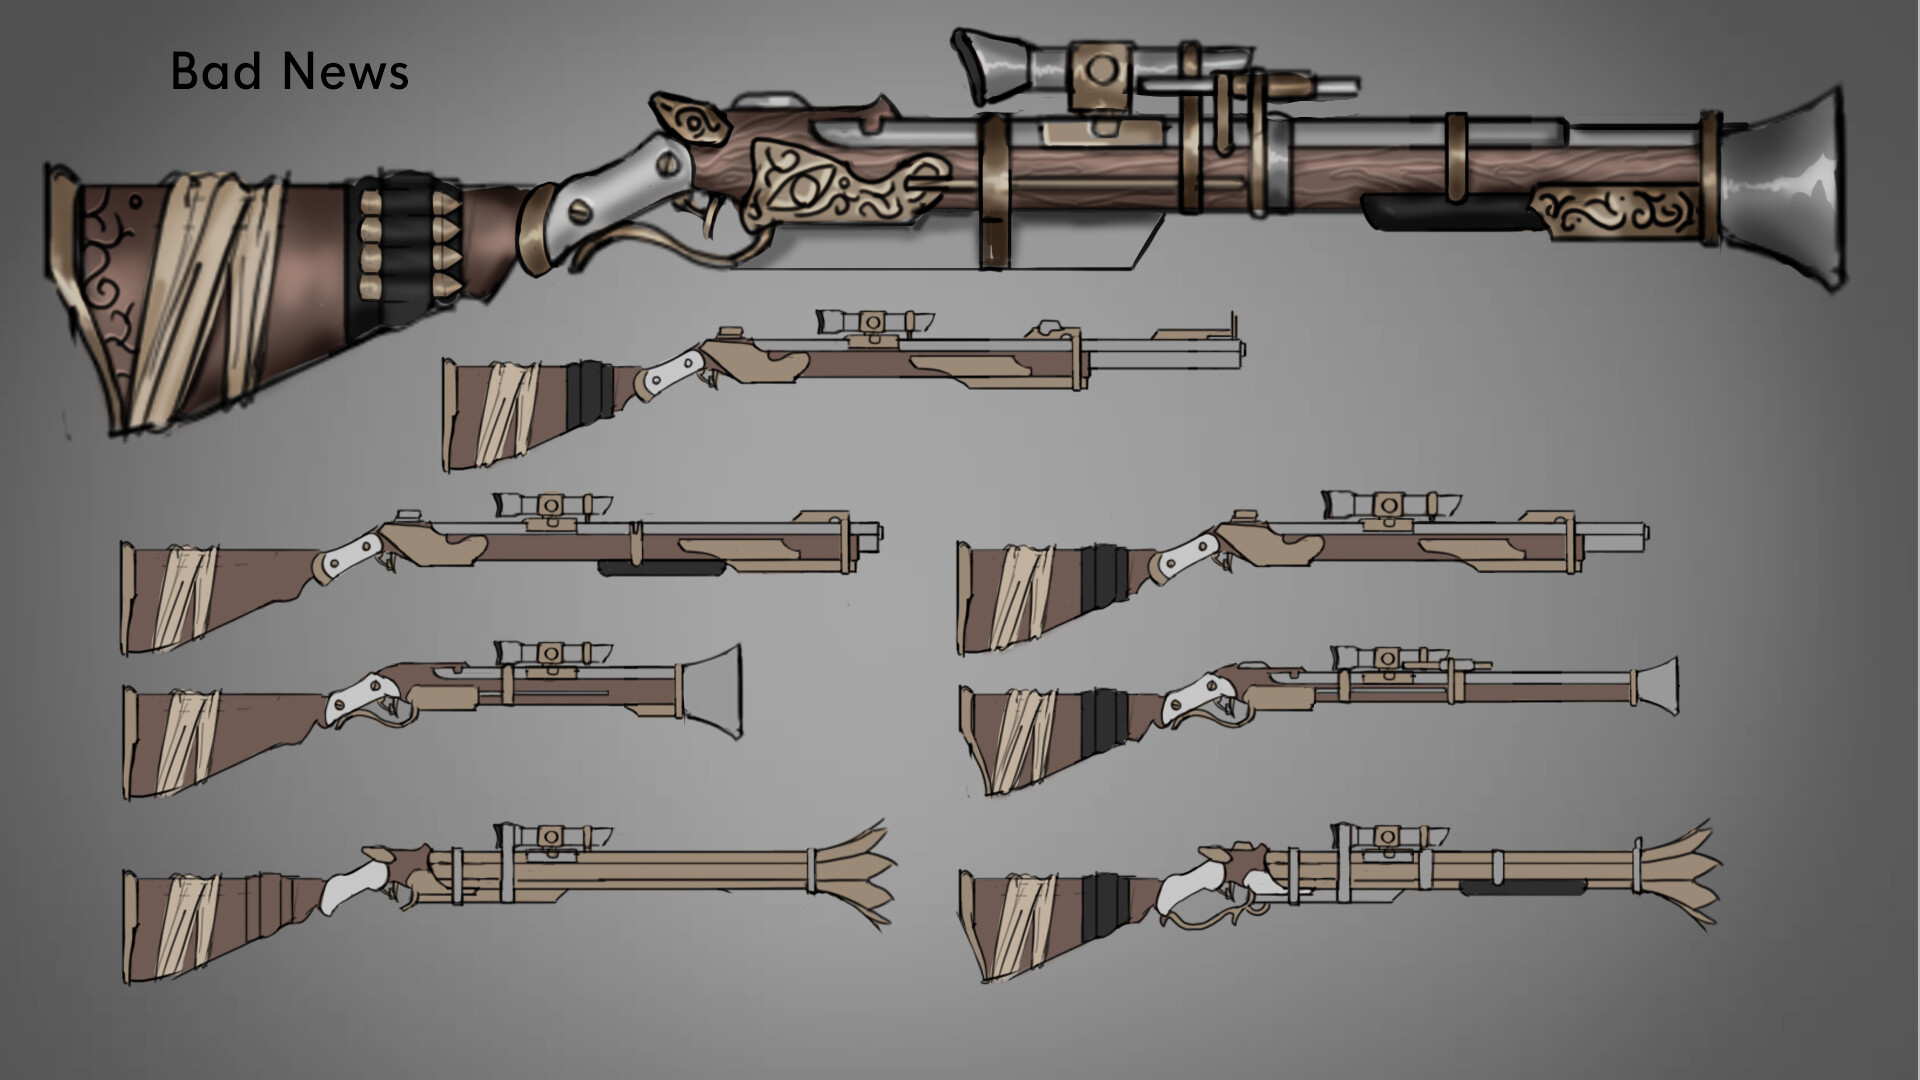 Kurtis knight percival weapons concept05